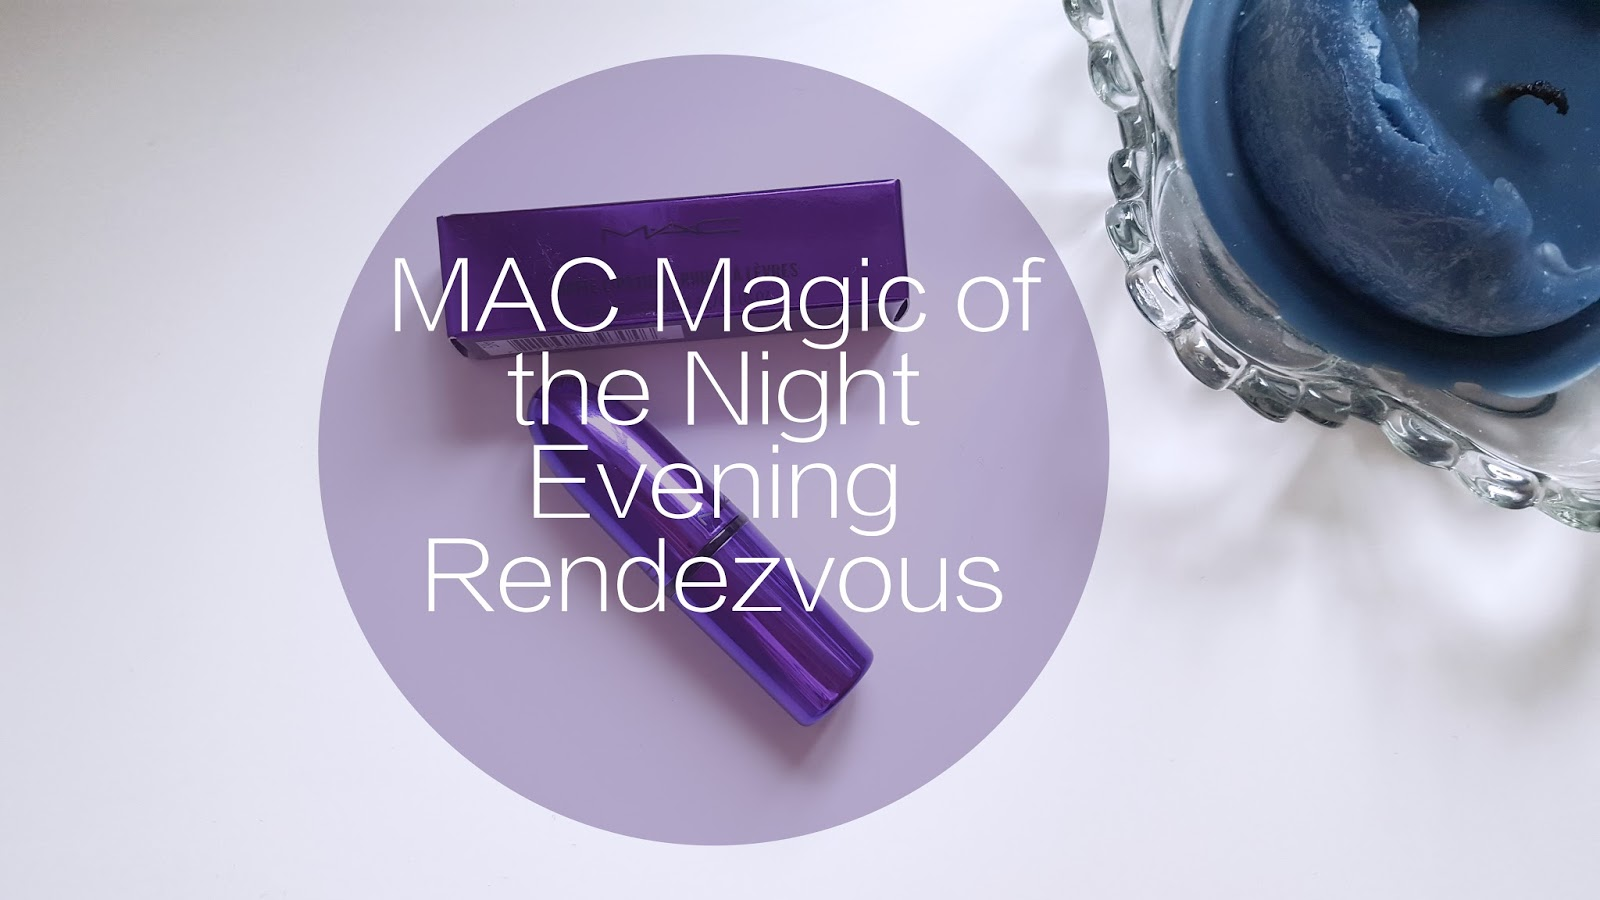 MAC Magic of the Night Evening Rendezvous Lipstick